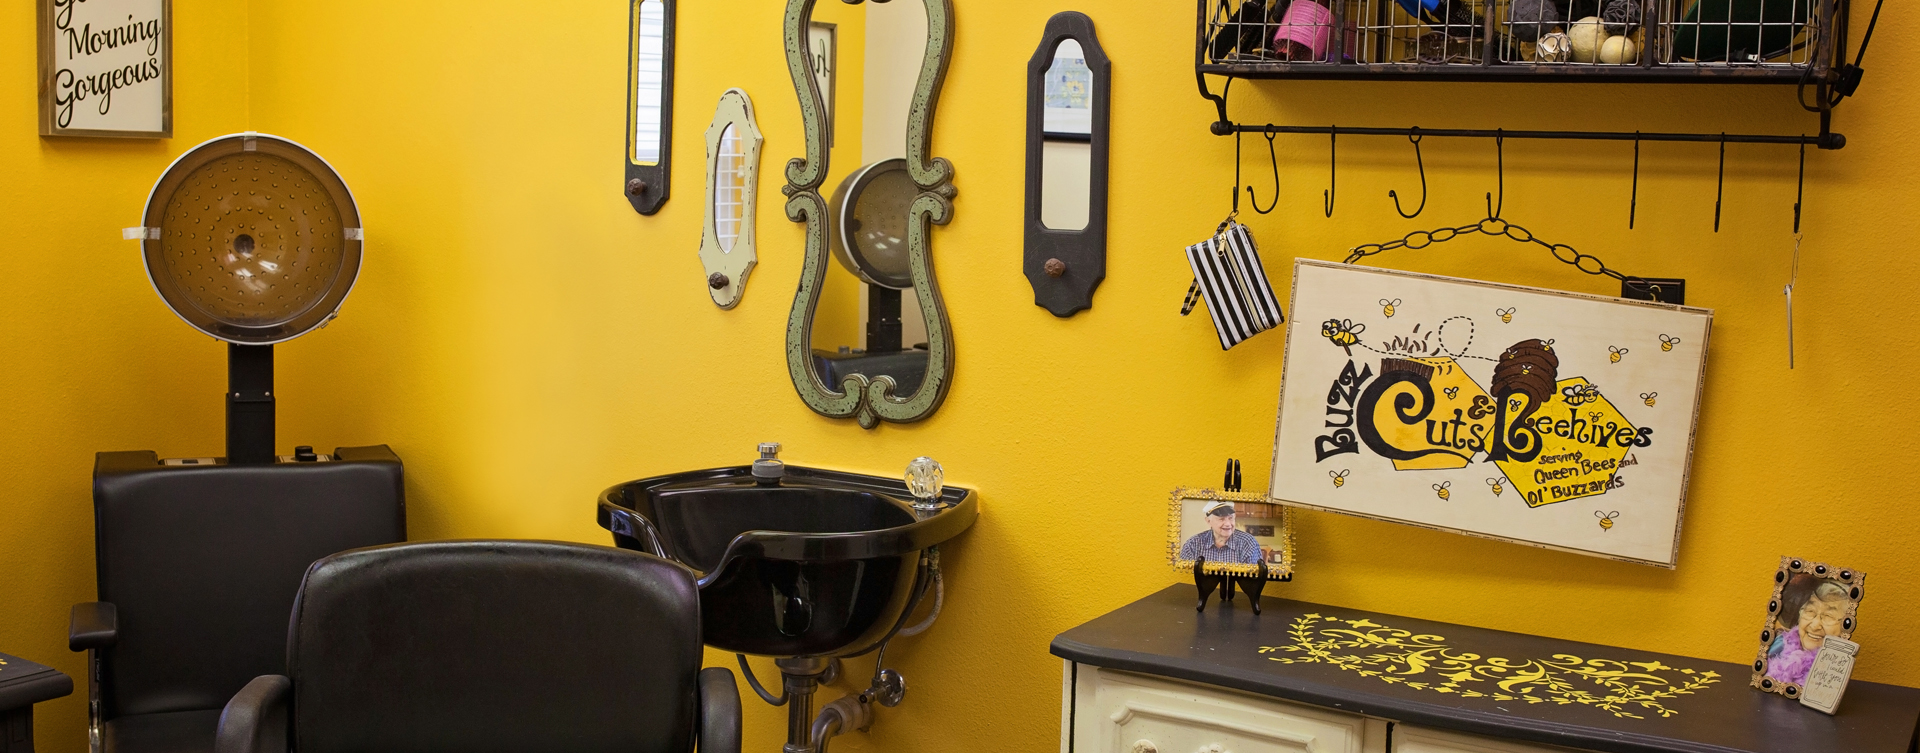 Receive personalized, at-home treatment from our stylist in the salon at Bickford of Cedar Falls